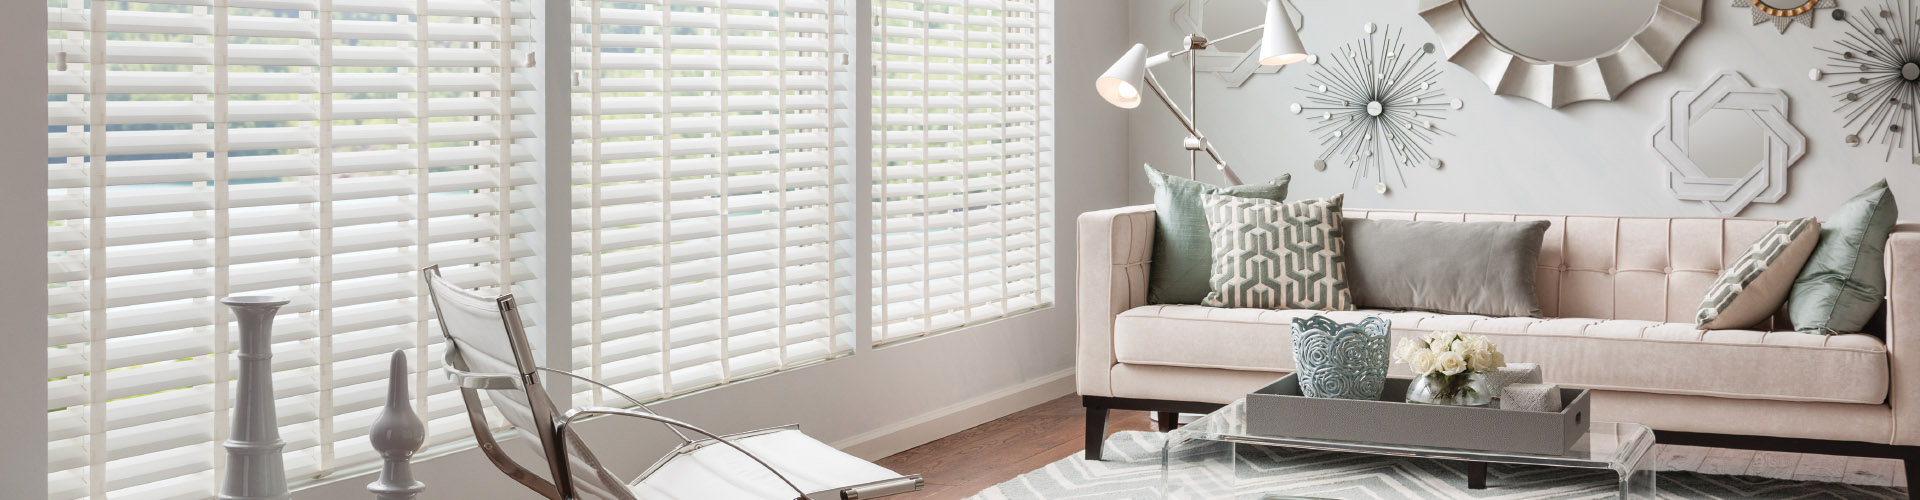 faux wood blinds header image